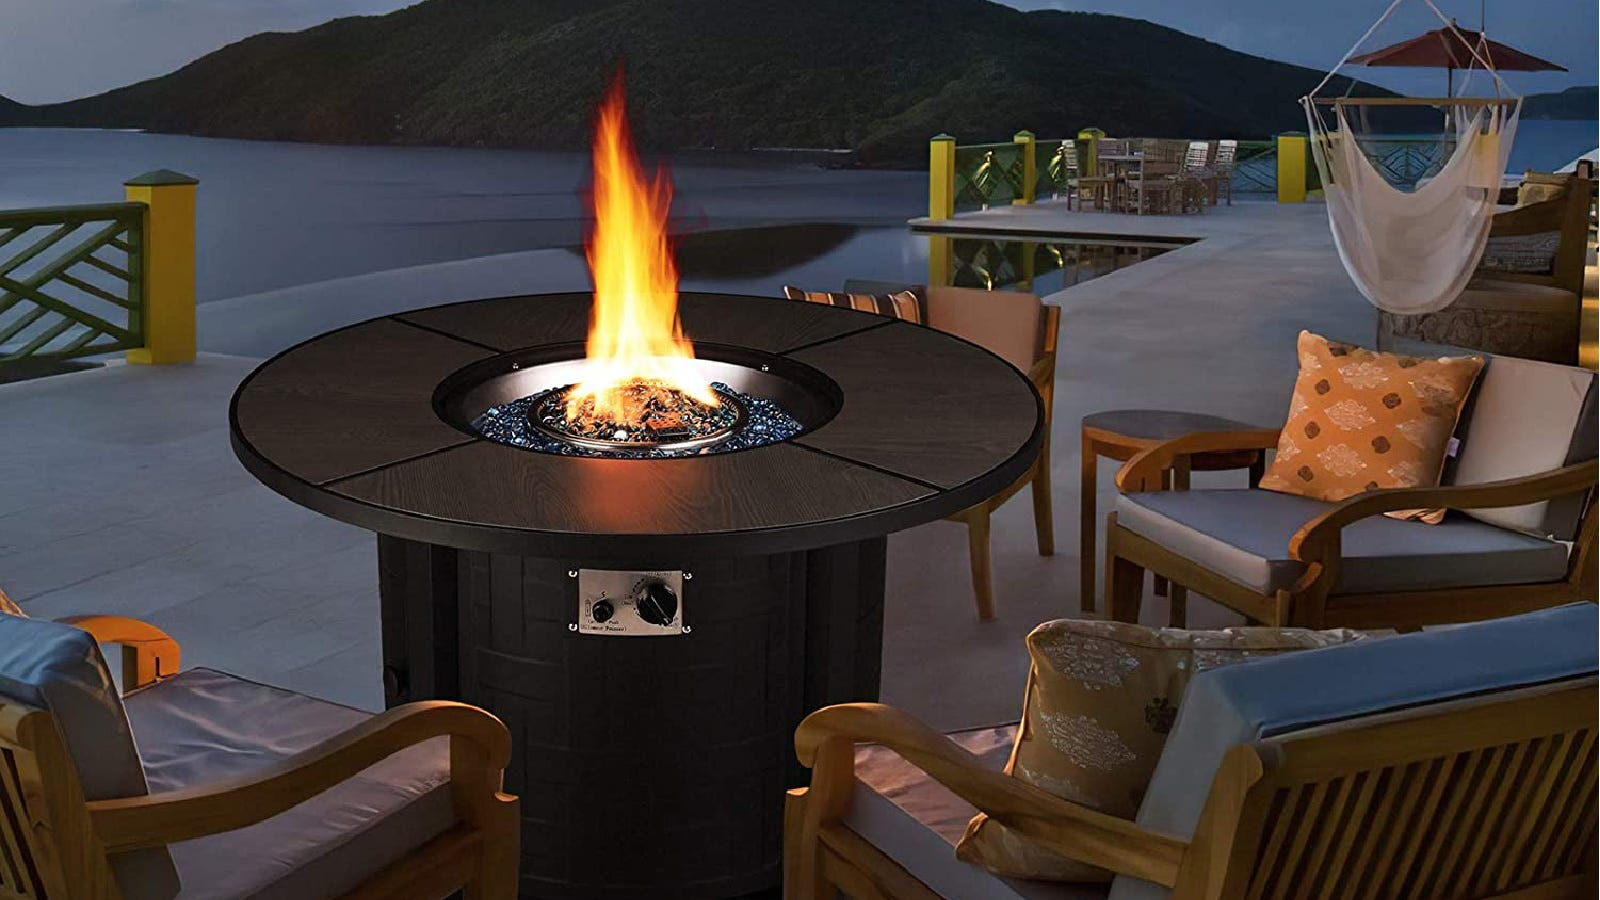 A round fire pit table, with an ignited flame on a warm evening with the moon shining ever so slightly over a gorgeous outdoor setting, surrounded by patio chairs.